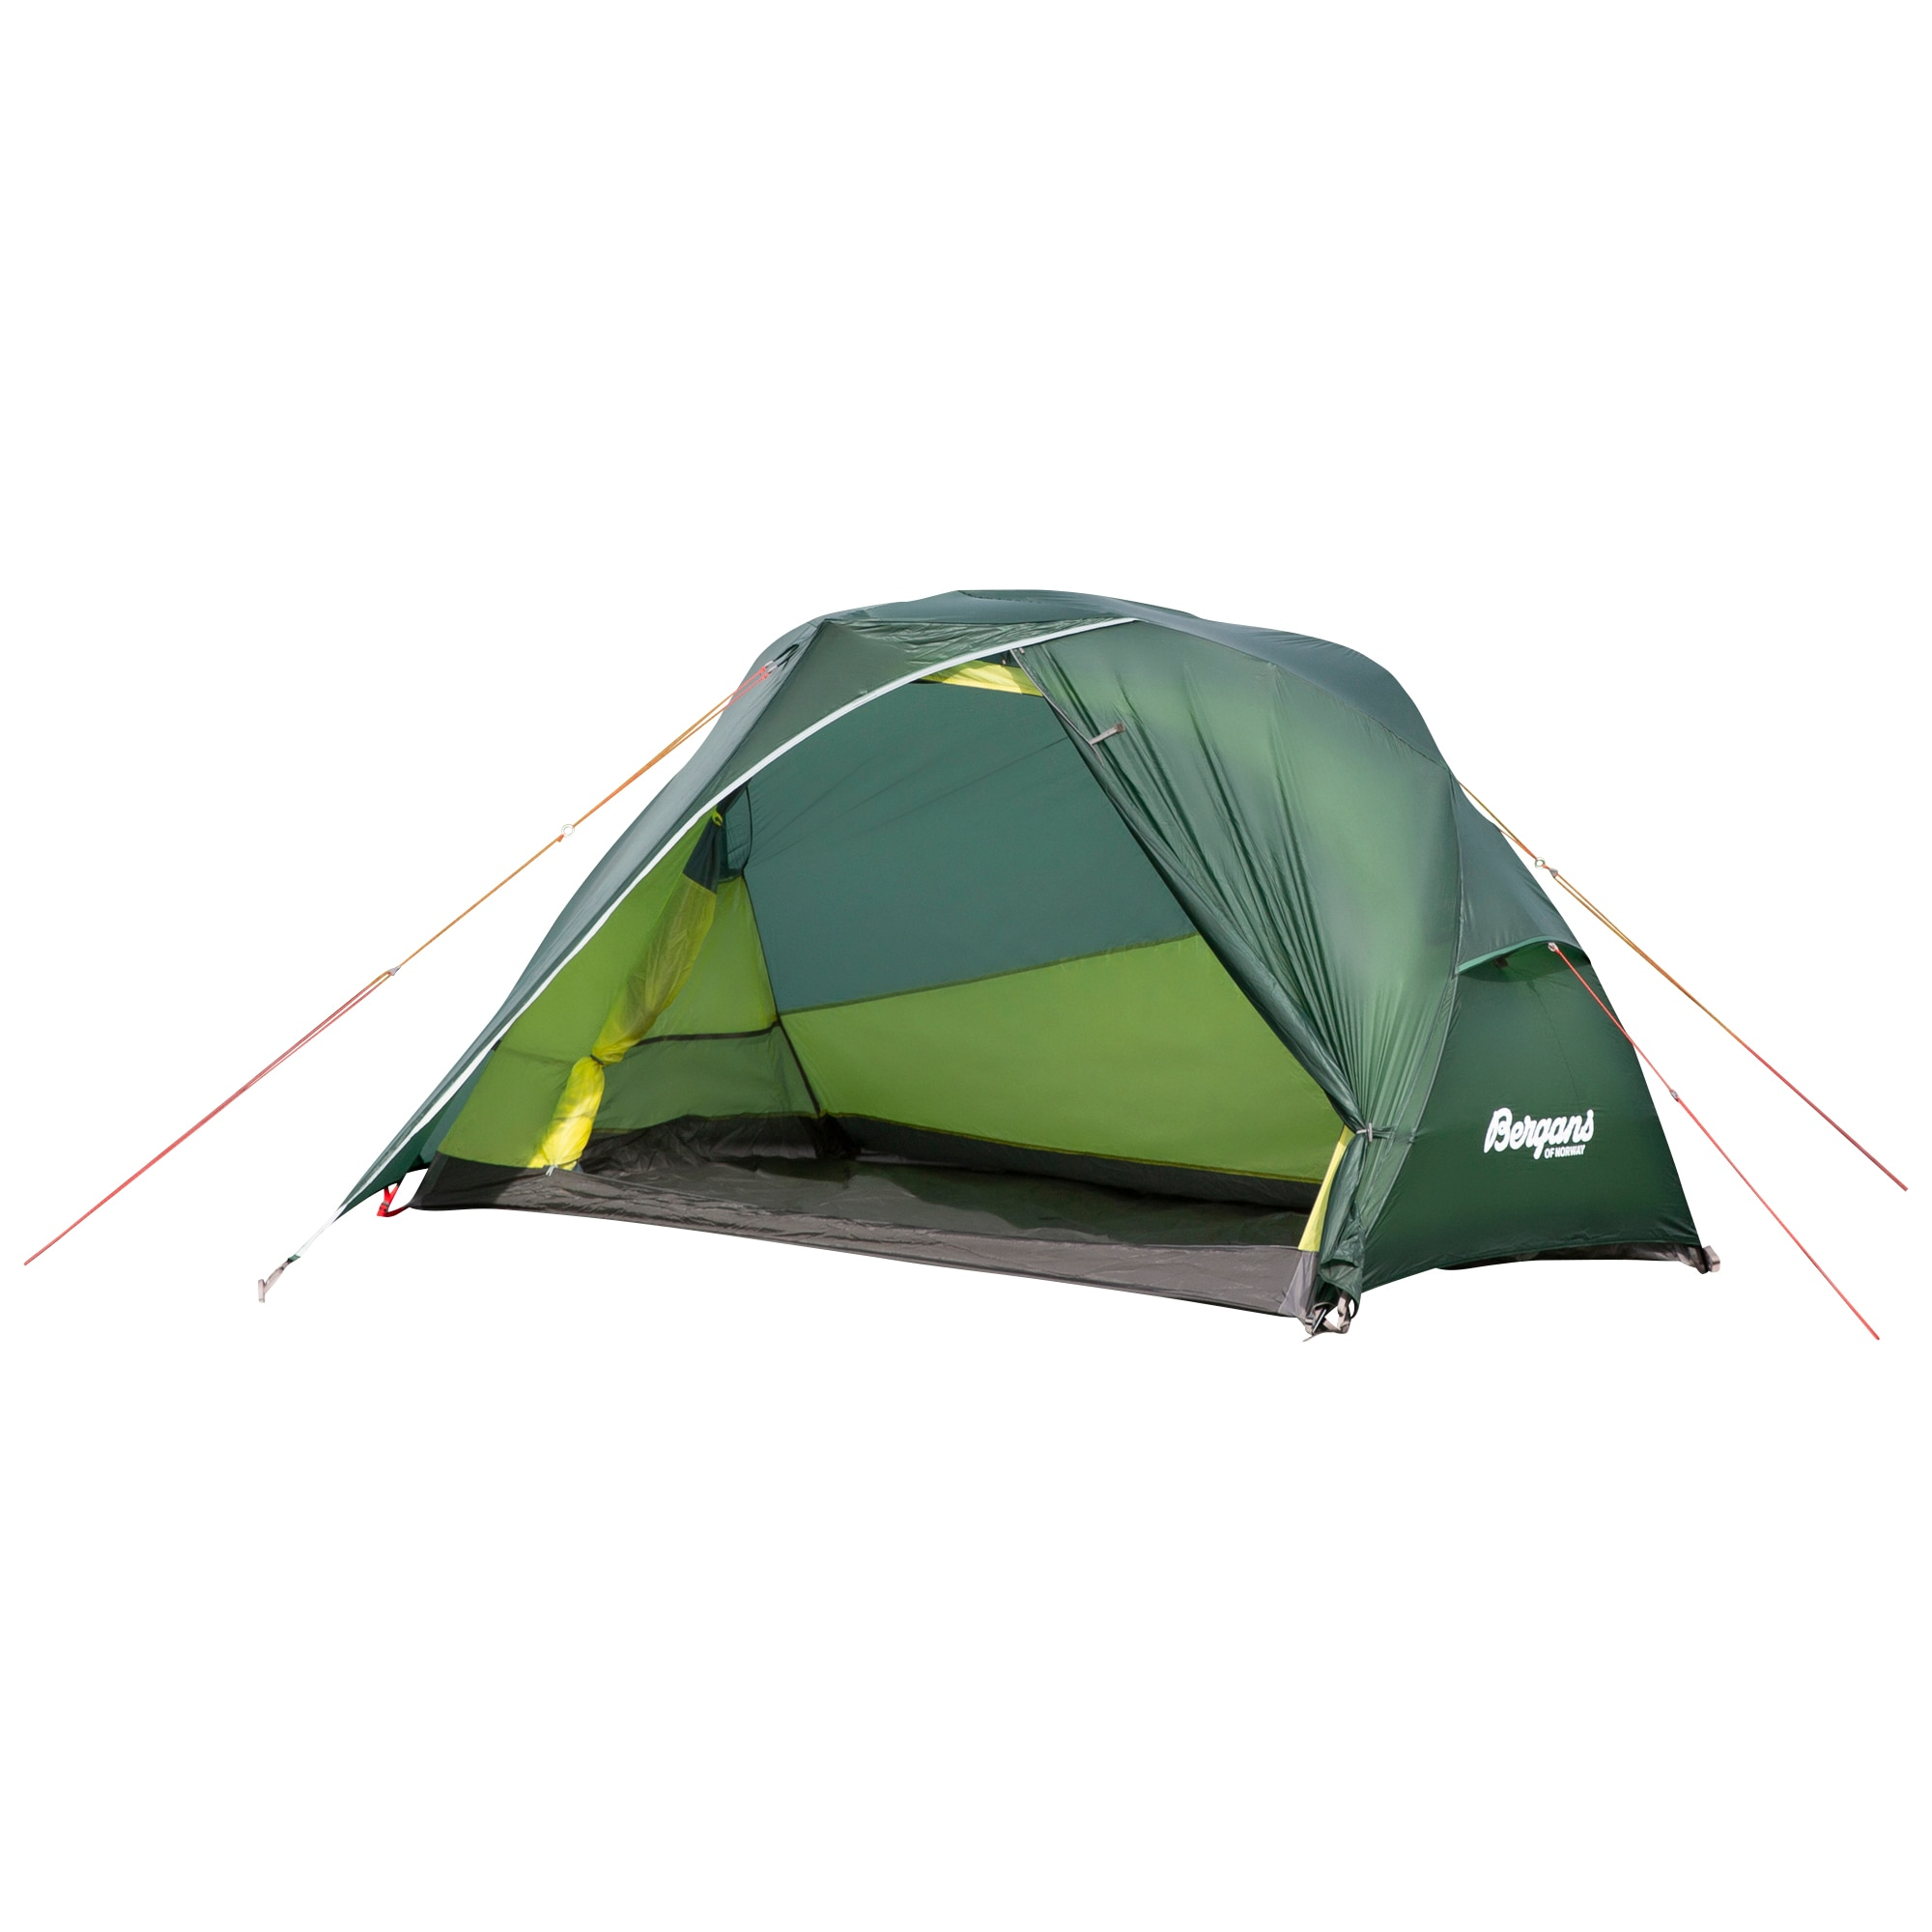 Super Light Dome 2-Persons Tent